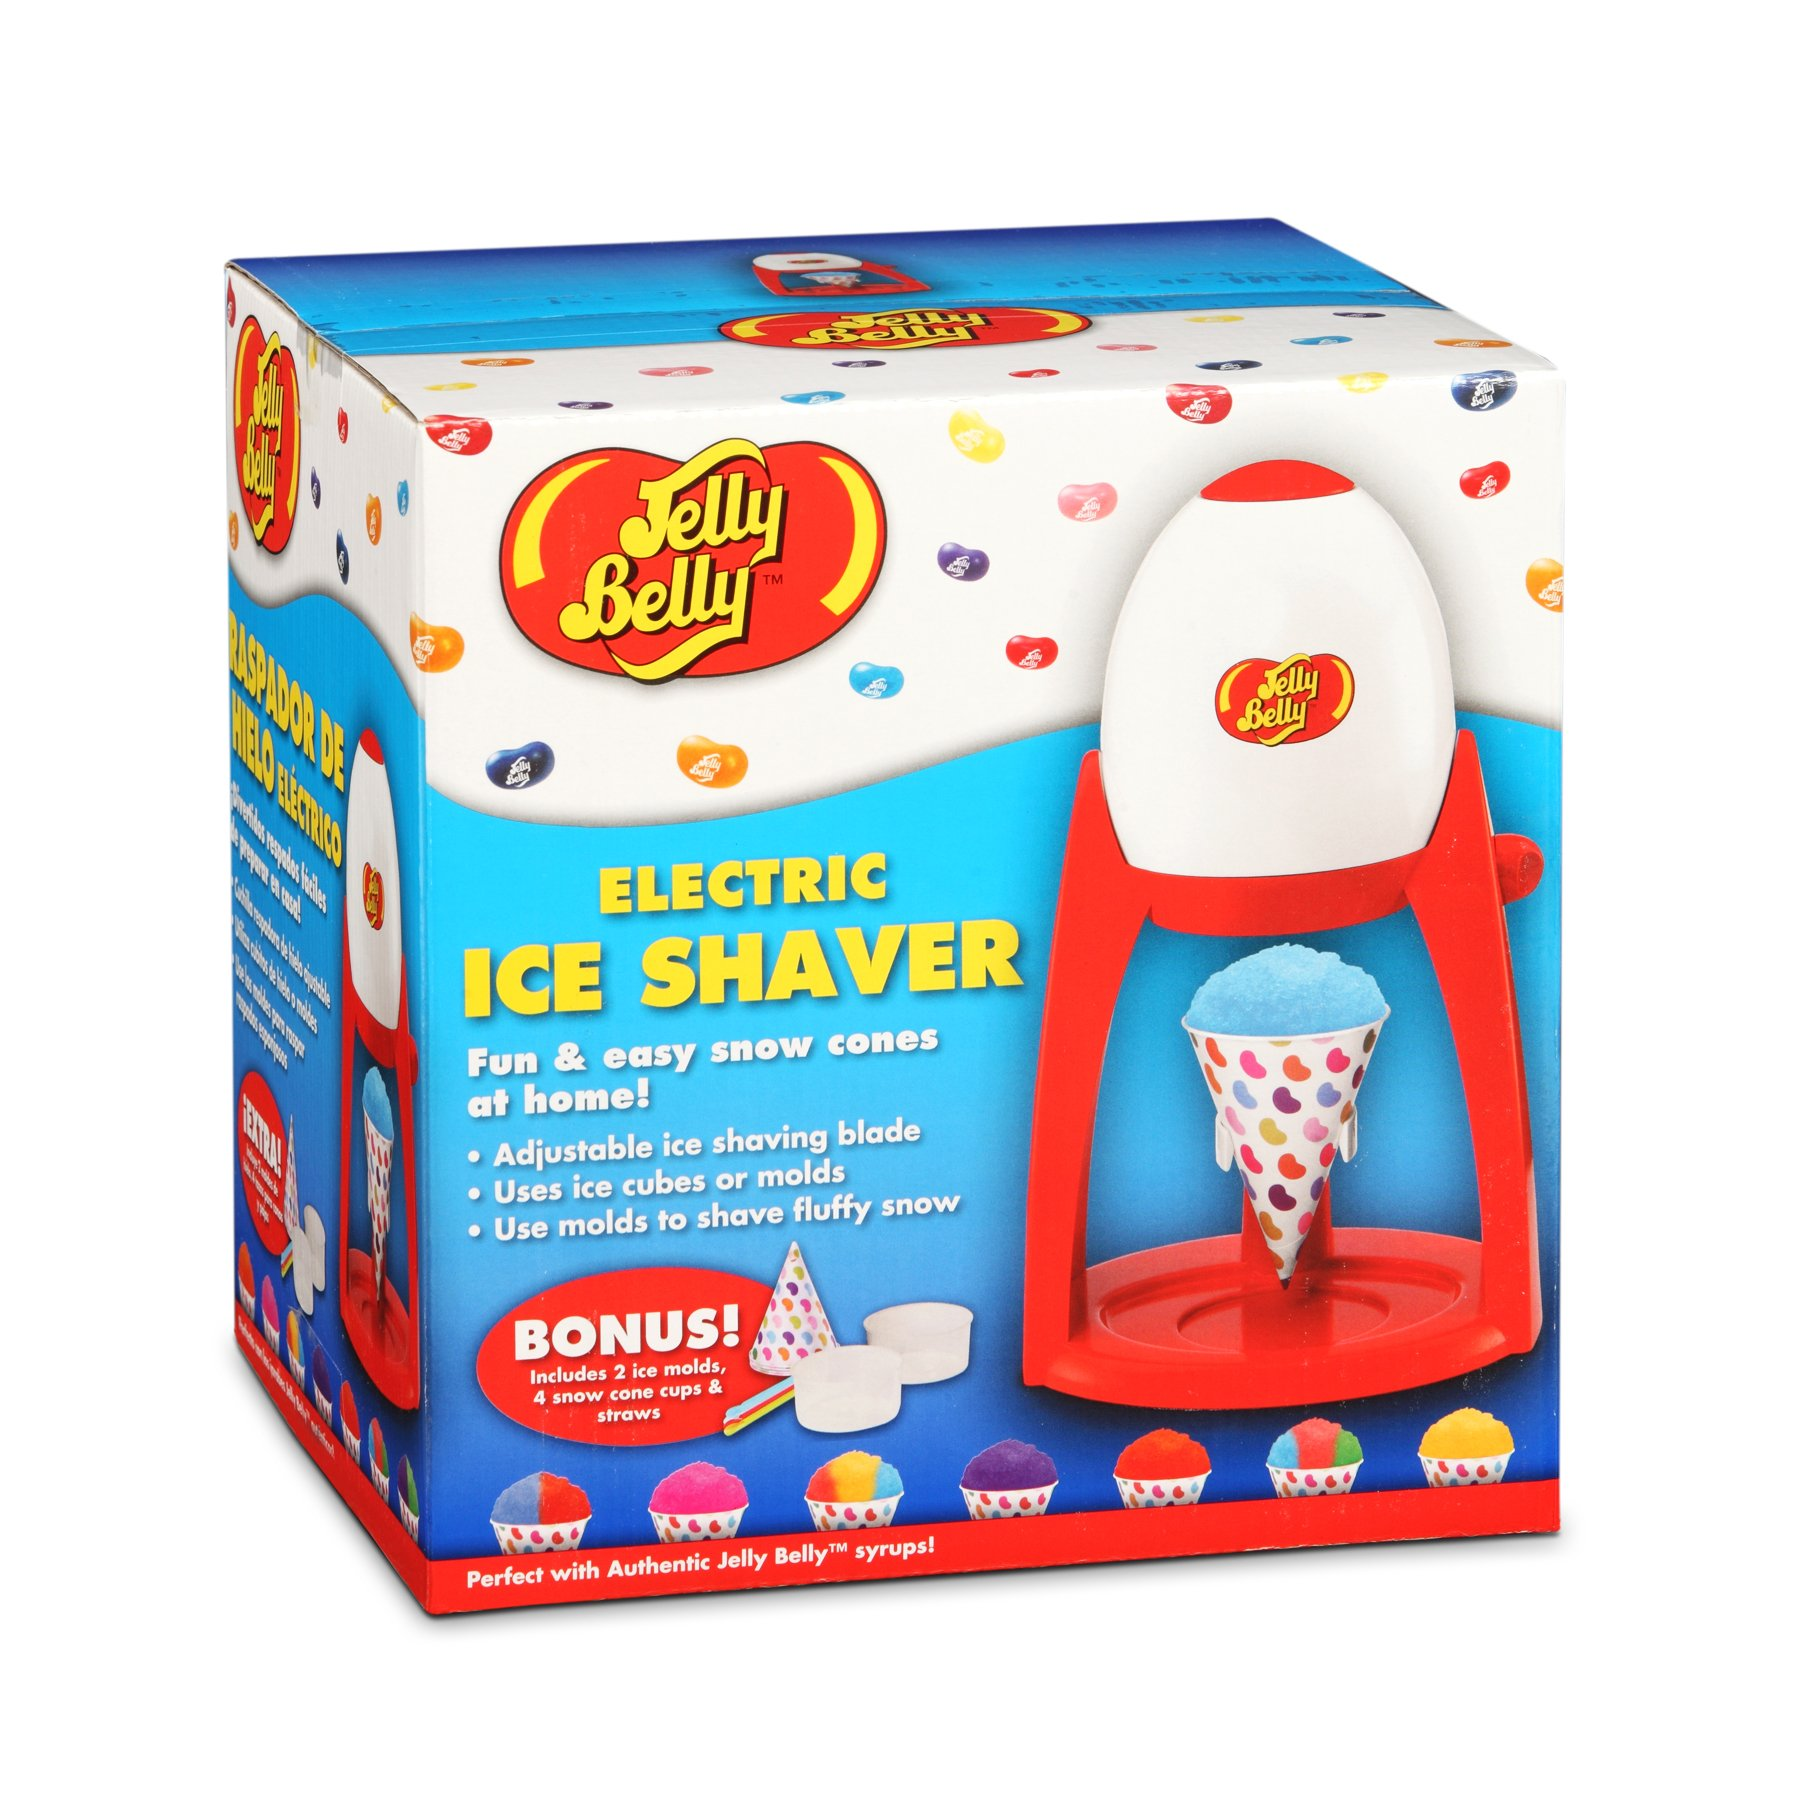 Jelly Belly JB15335 Easy to Use Electric Commercial Snow Cone Maker Fast Fun and Easy Icy Treat, Red